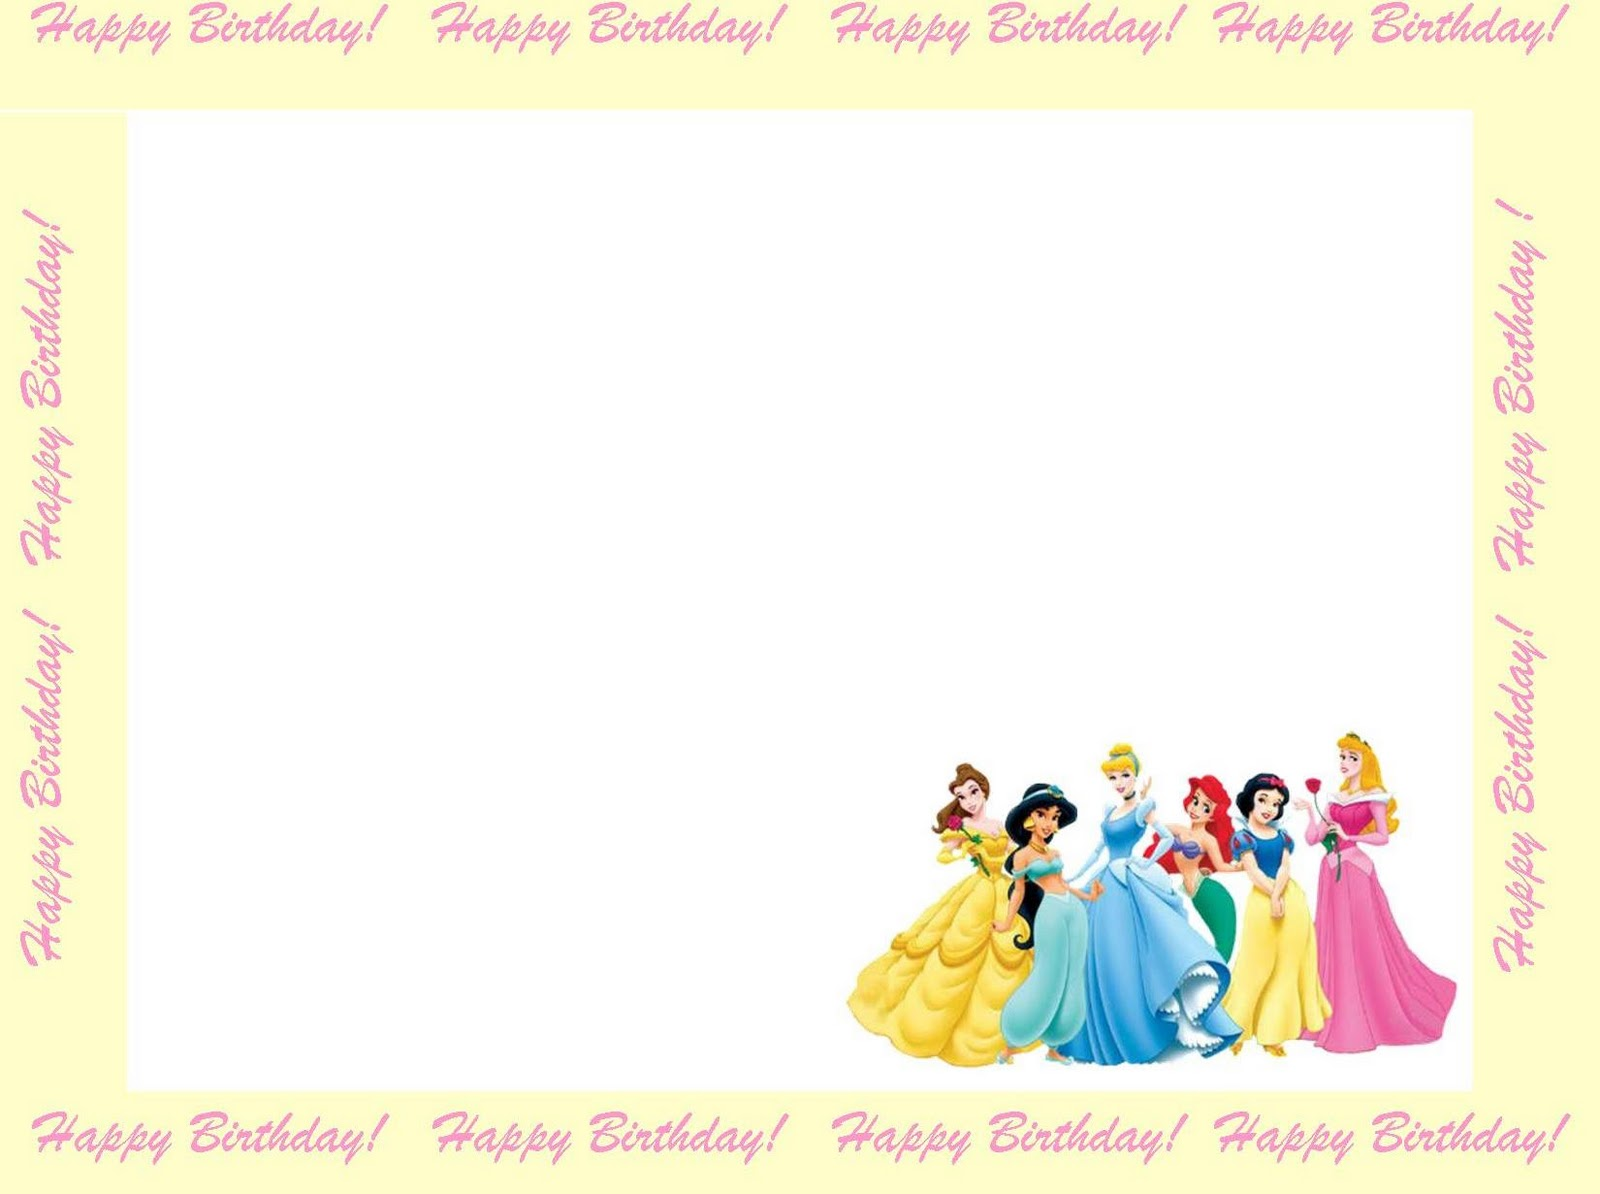 princess birthday template ; disney-princess-invitations-free-template-1000-images-about-birthday-ideas-on-pinterest_disney-princess-invitation-templates-fr-on-disney-archives